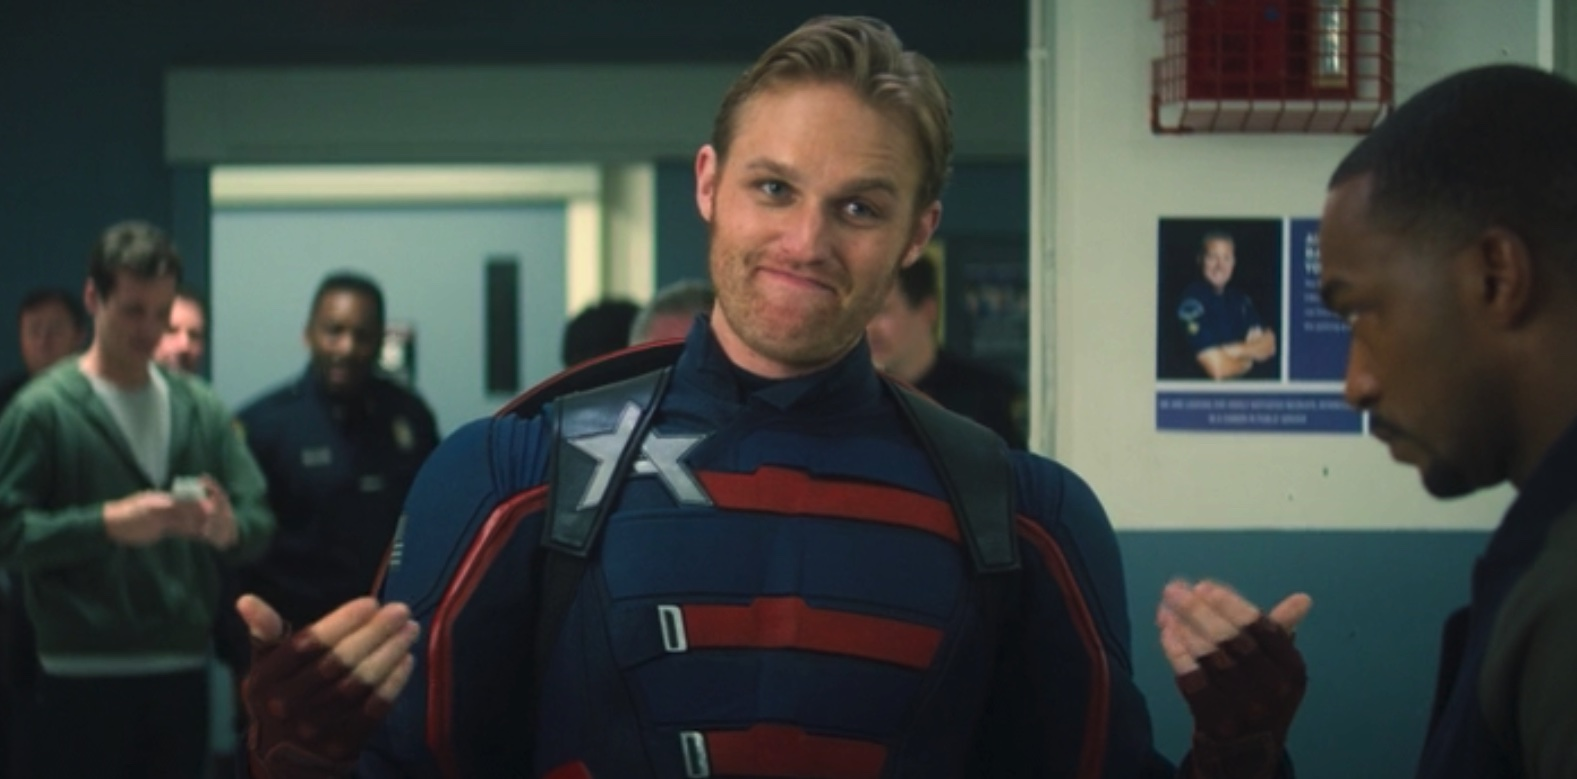 Wyatt Russell as John Walker aka US Agent aka New Captain America in Falcon and the Winter Soldier